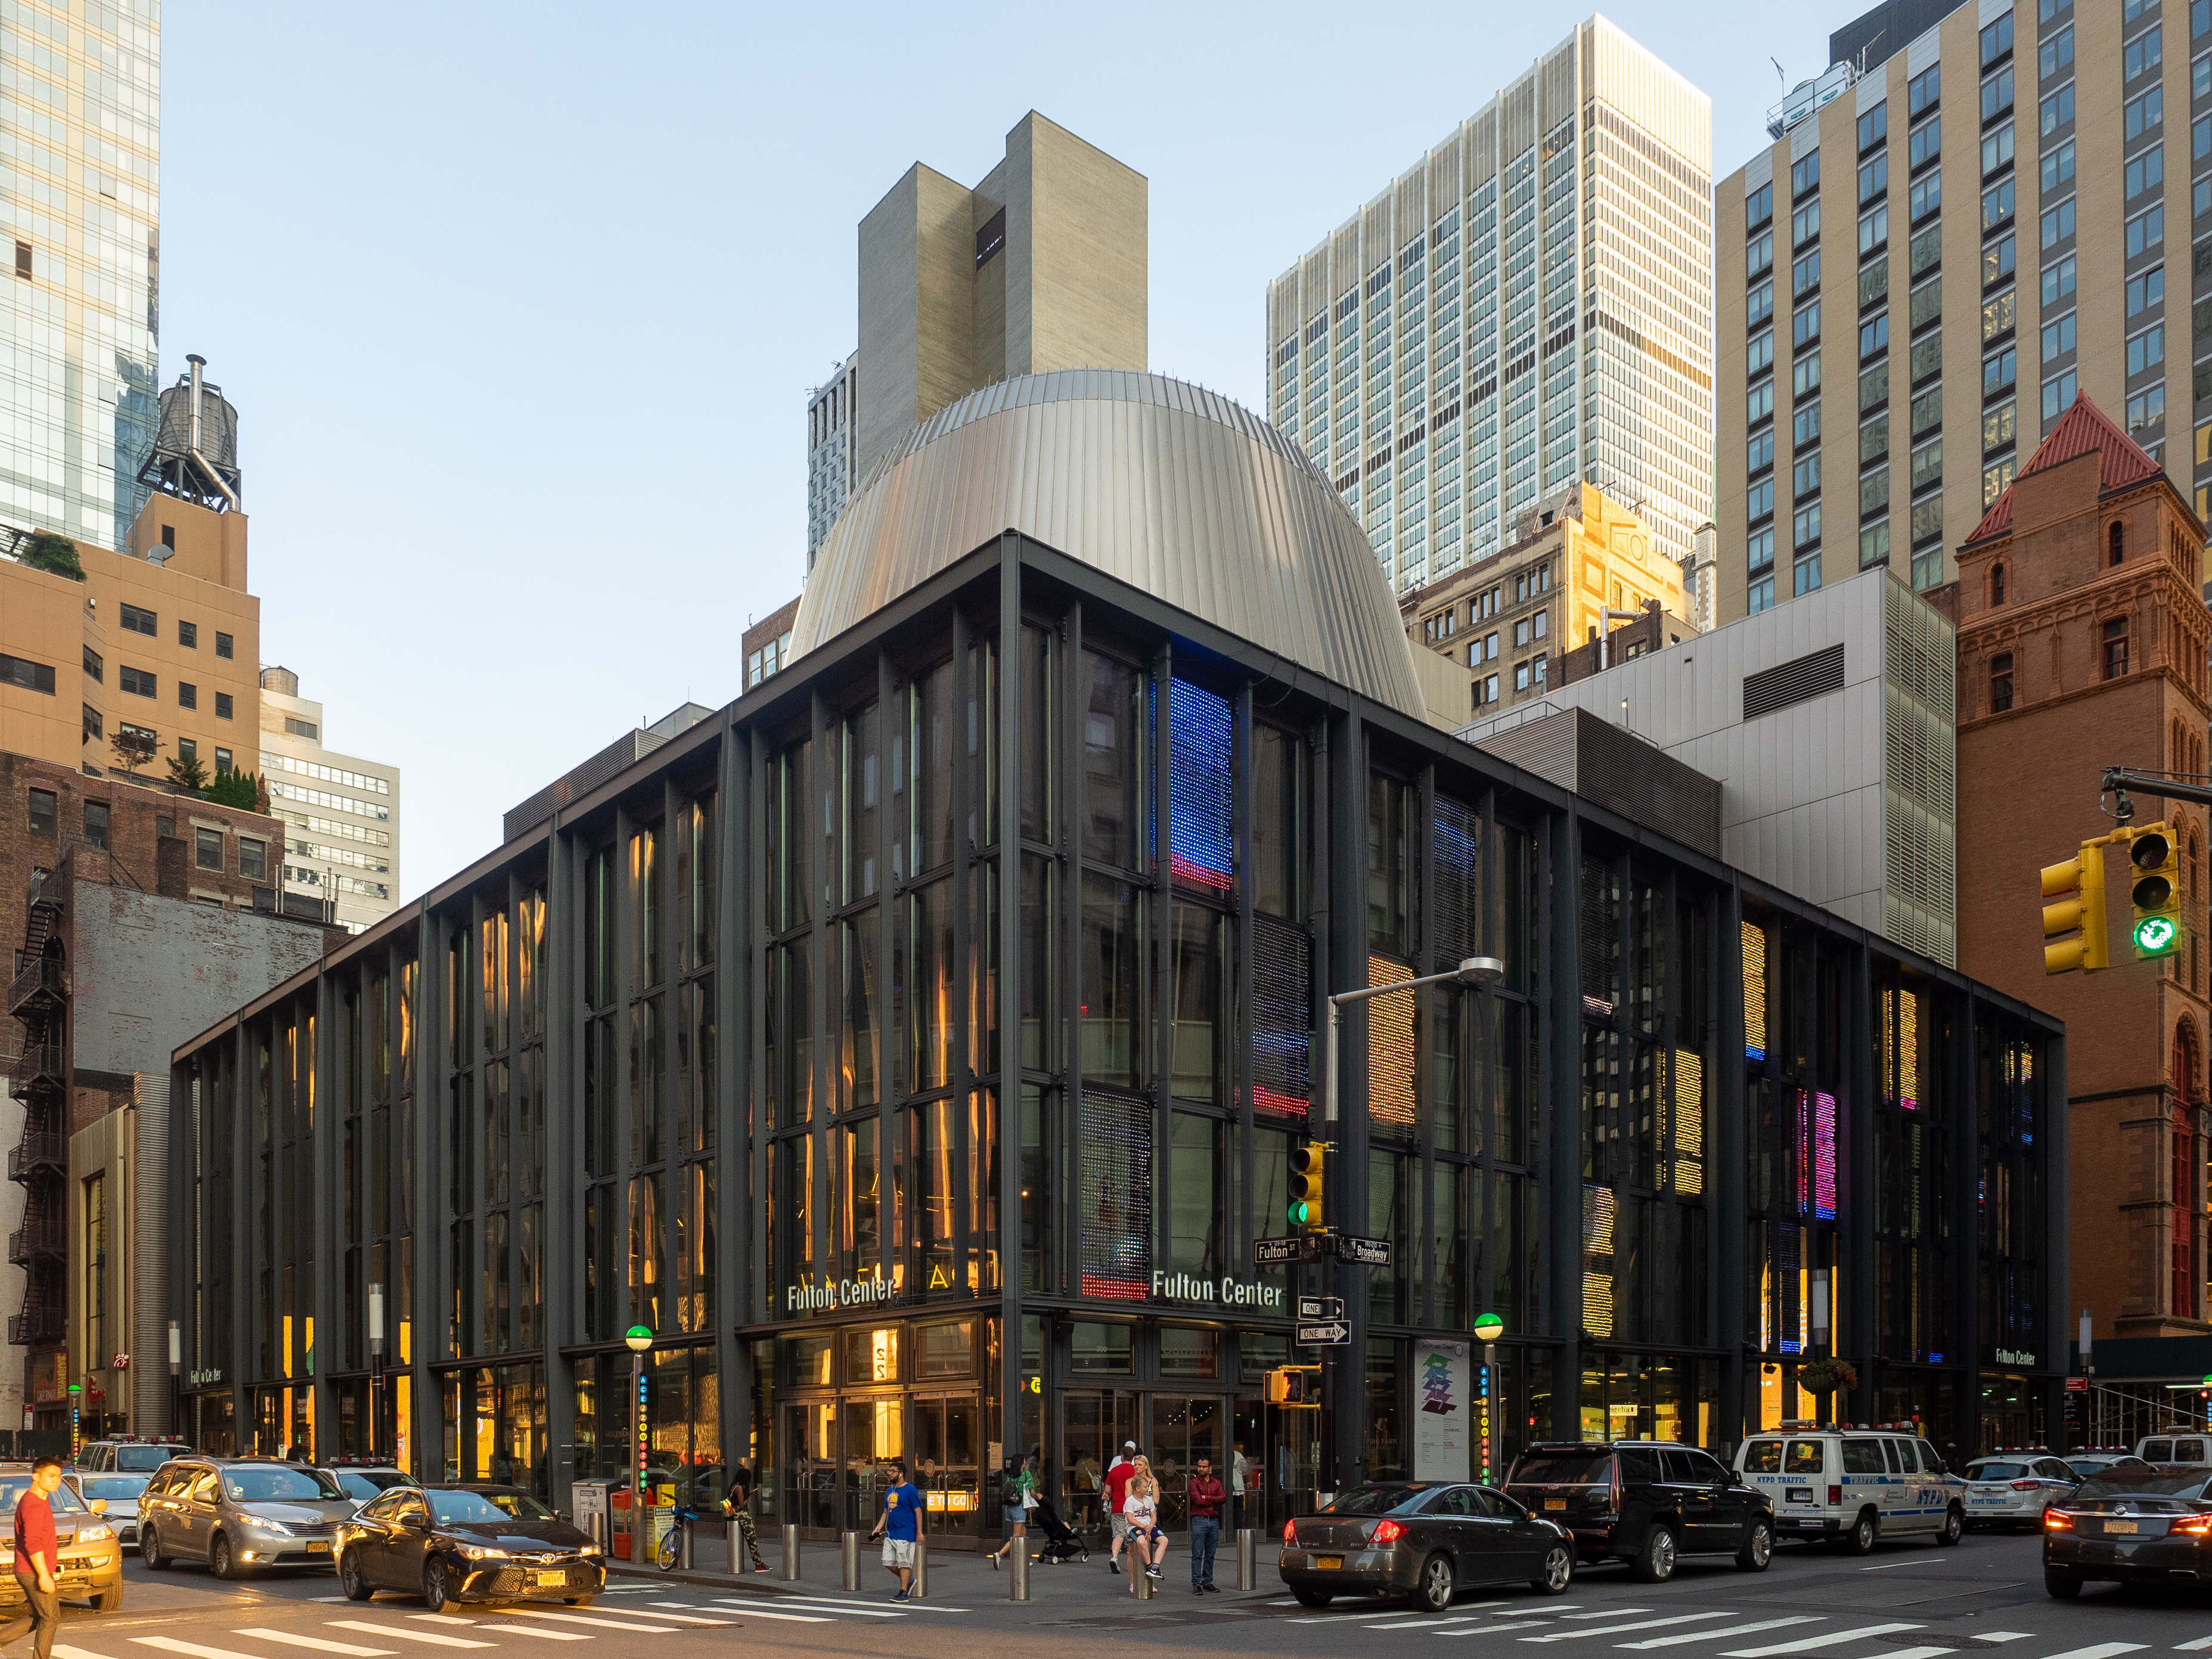 Fulton Center - Wikipedia